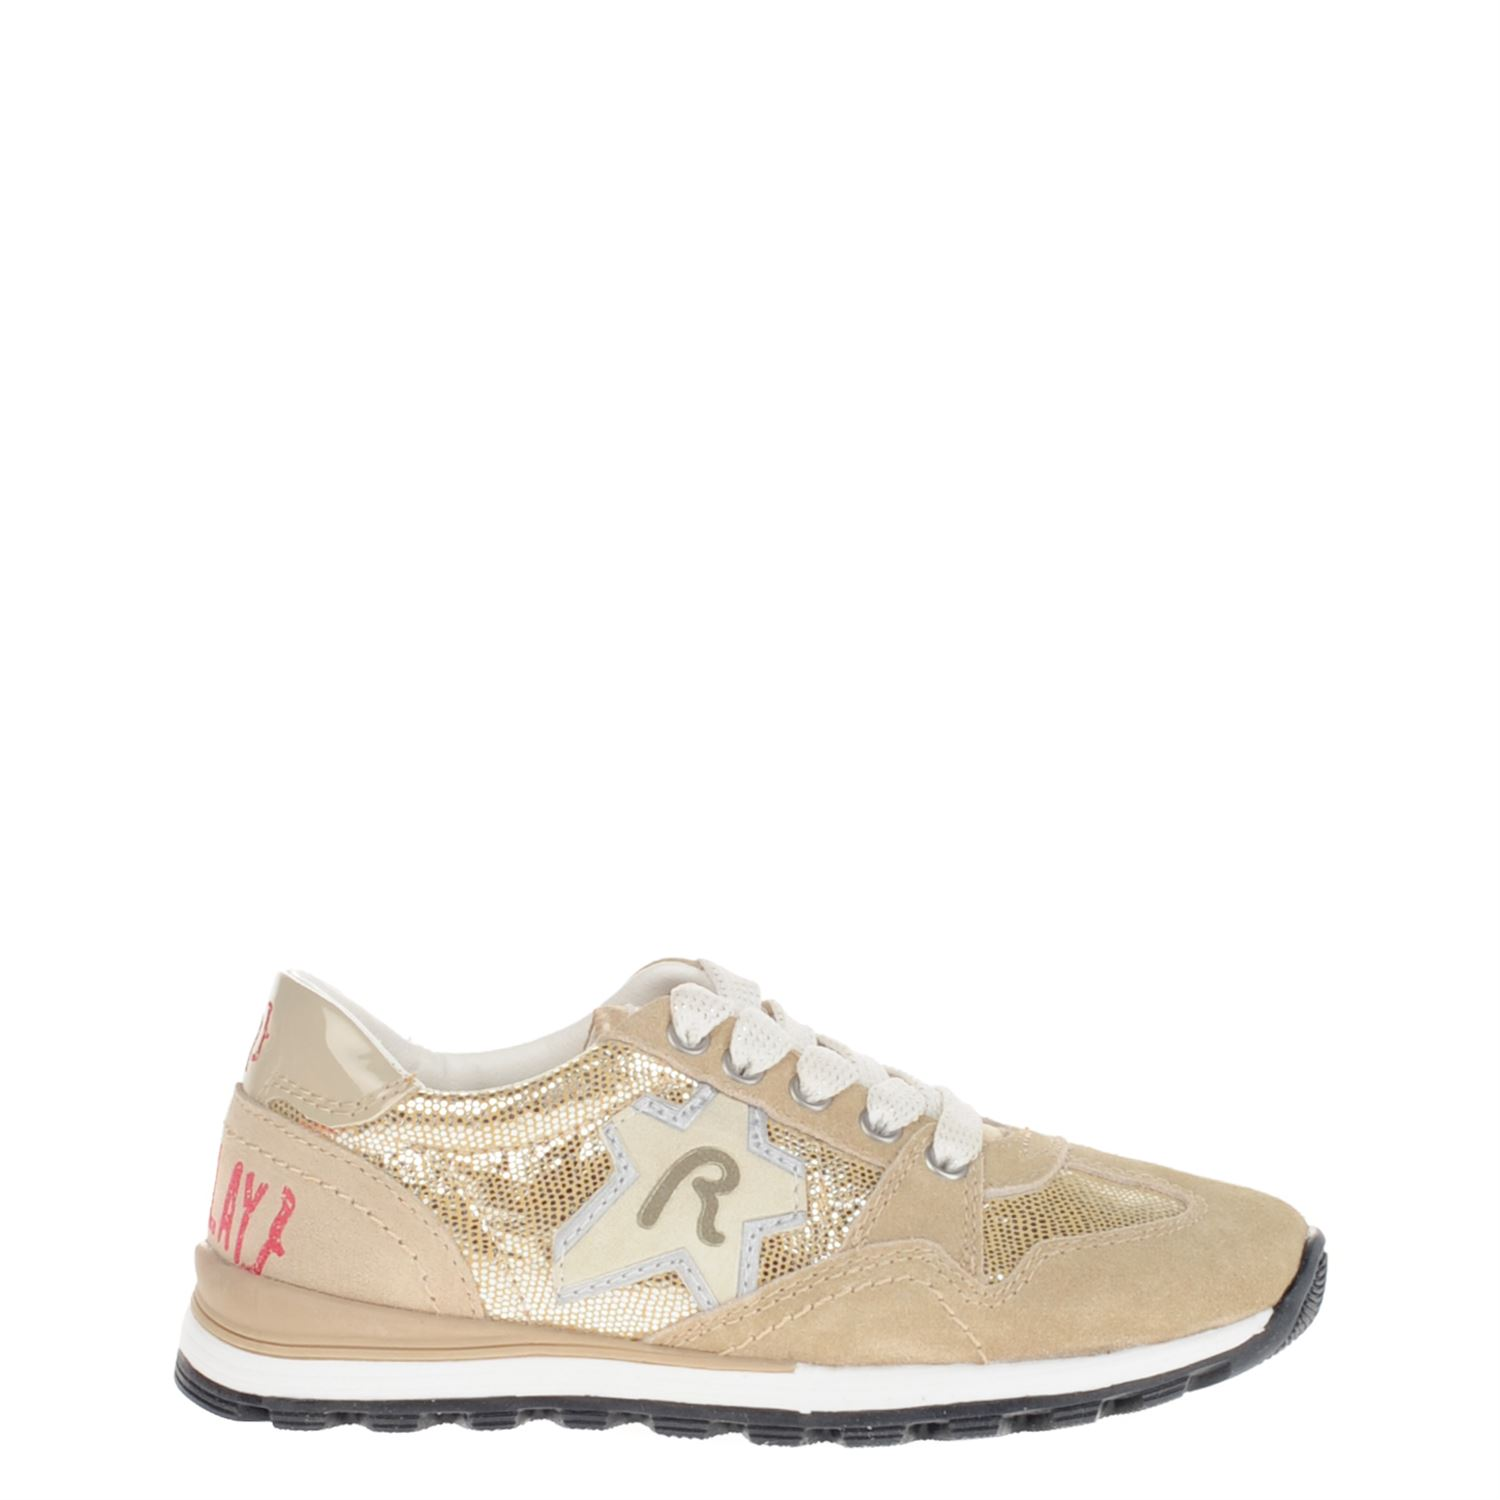 3d0e16bb29b Lage Replay Meisjes Sneakers Lage Goud Replay Goud Replay Meisjes Sneakers  Fw4F0